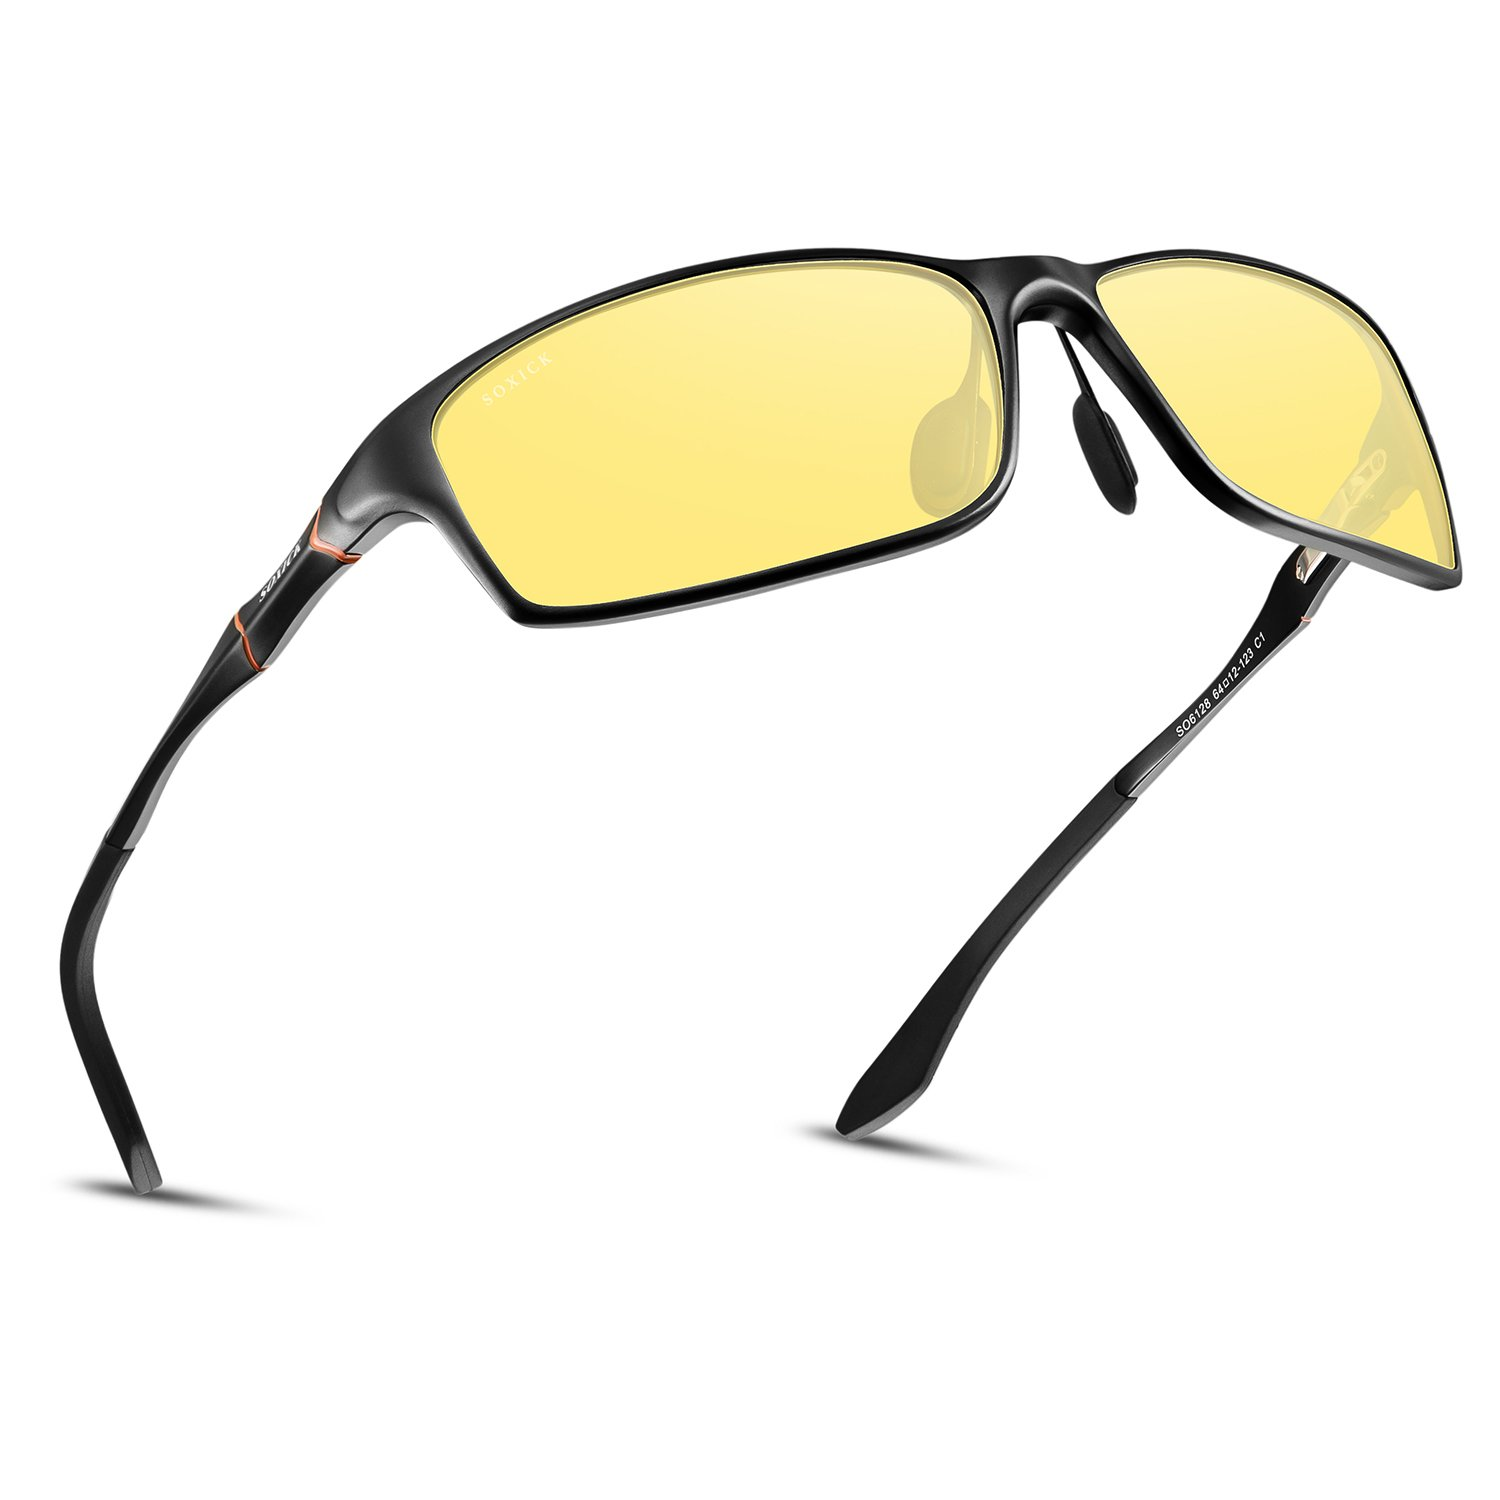 Soxick Night Driving Polarized Glasses for Men Women Anti Glare Rainy Safe HD Night Vision HOT Fashion Sunglasses(black oval yellow) by SOXICK